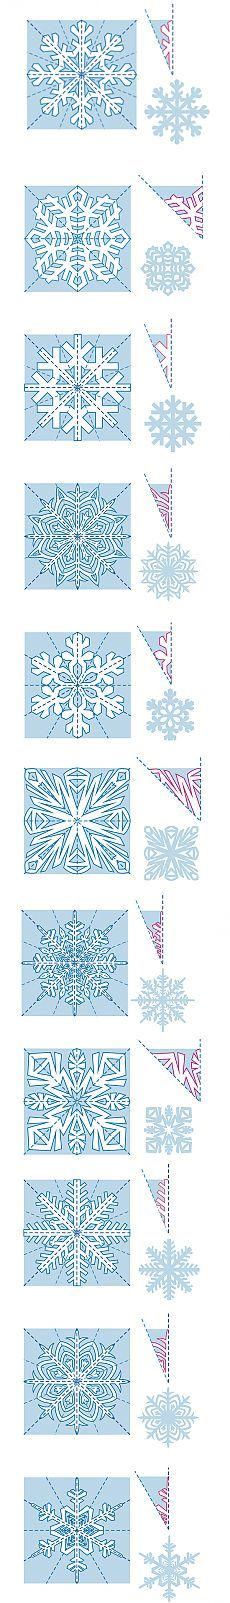 Snowflake cutting designs